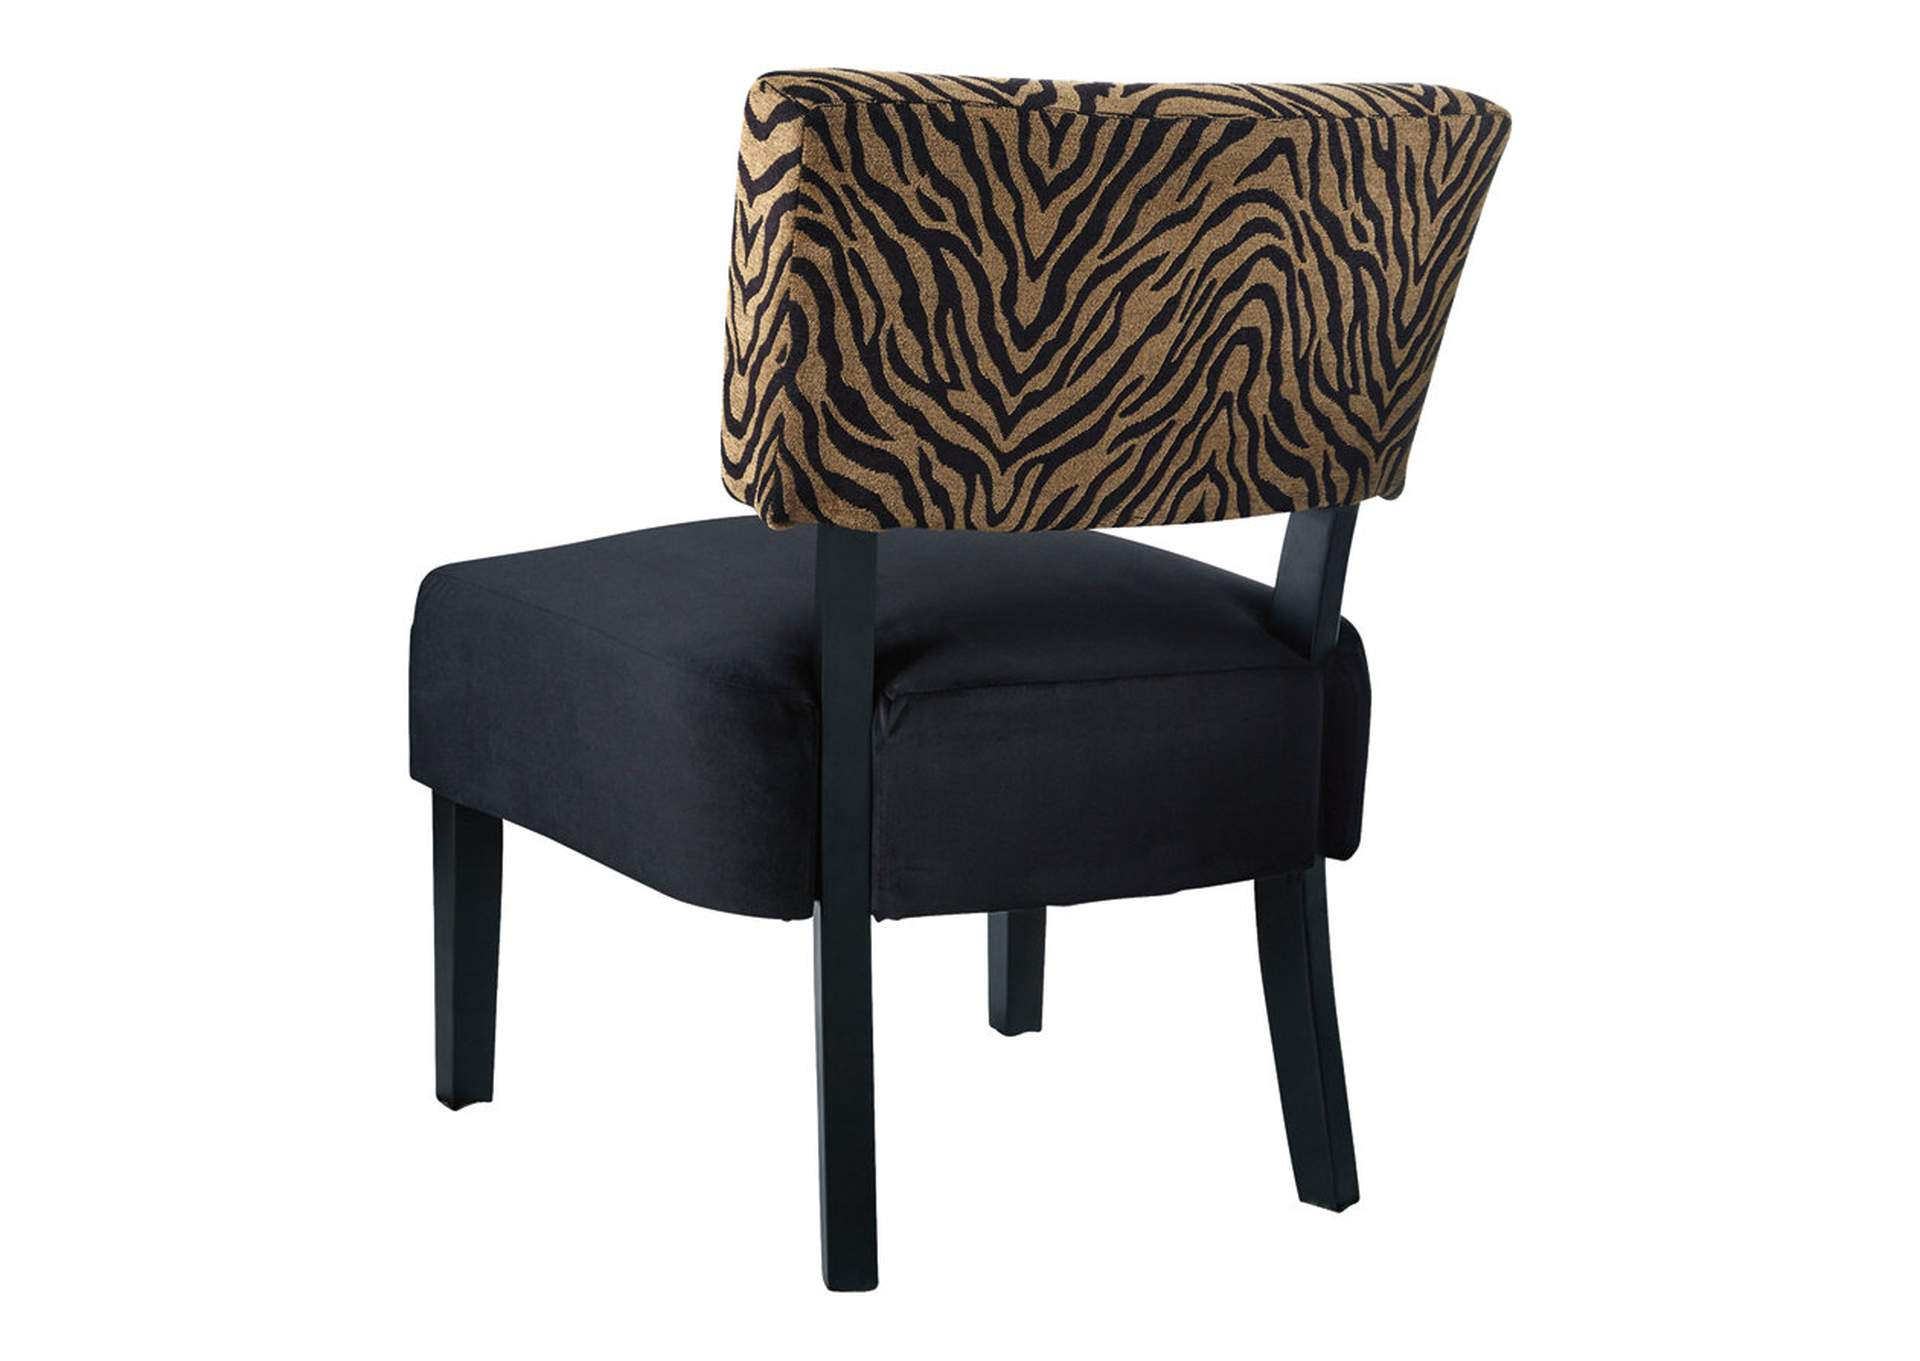 Parvin Gold/Black Accent Chair,Signature Design By Ashley